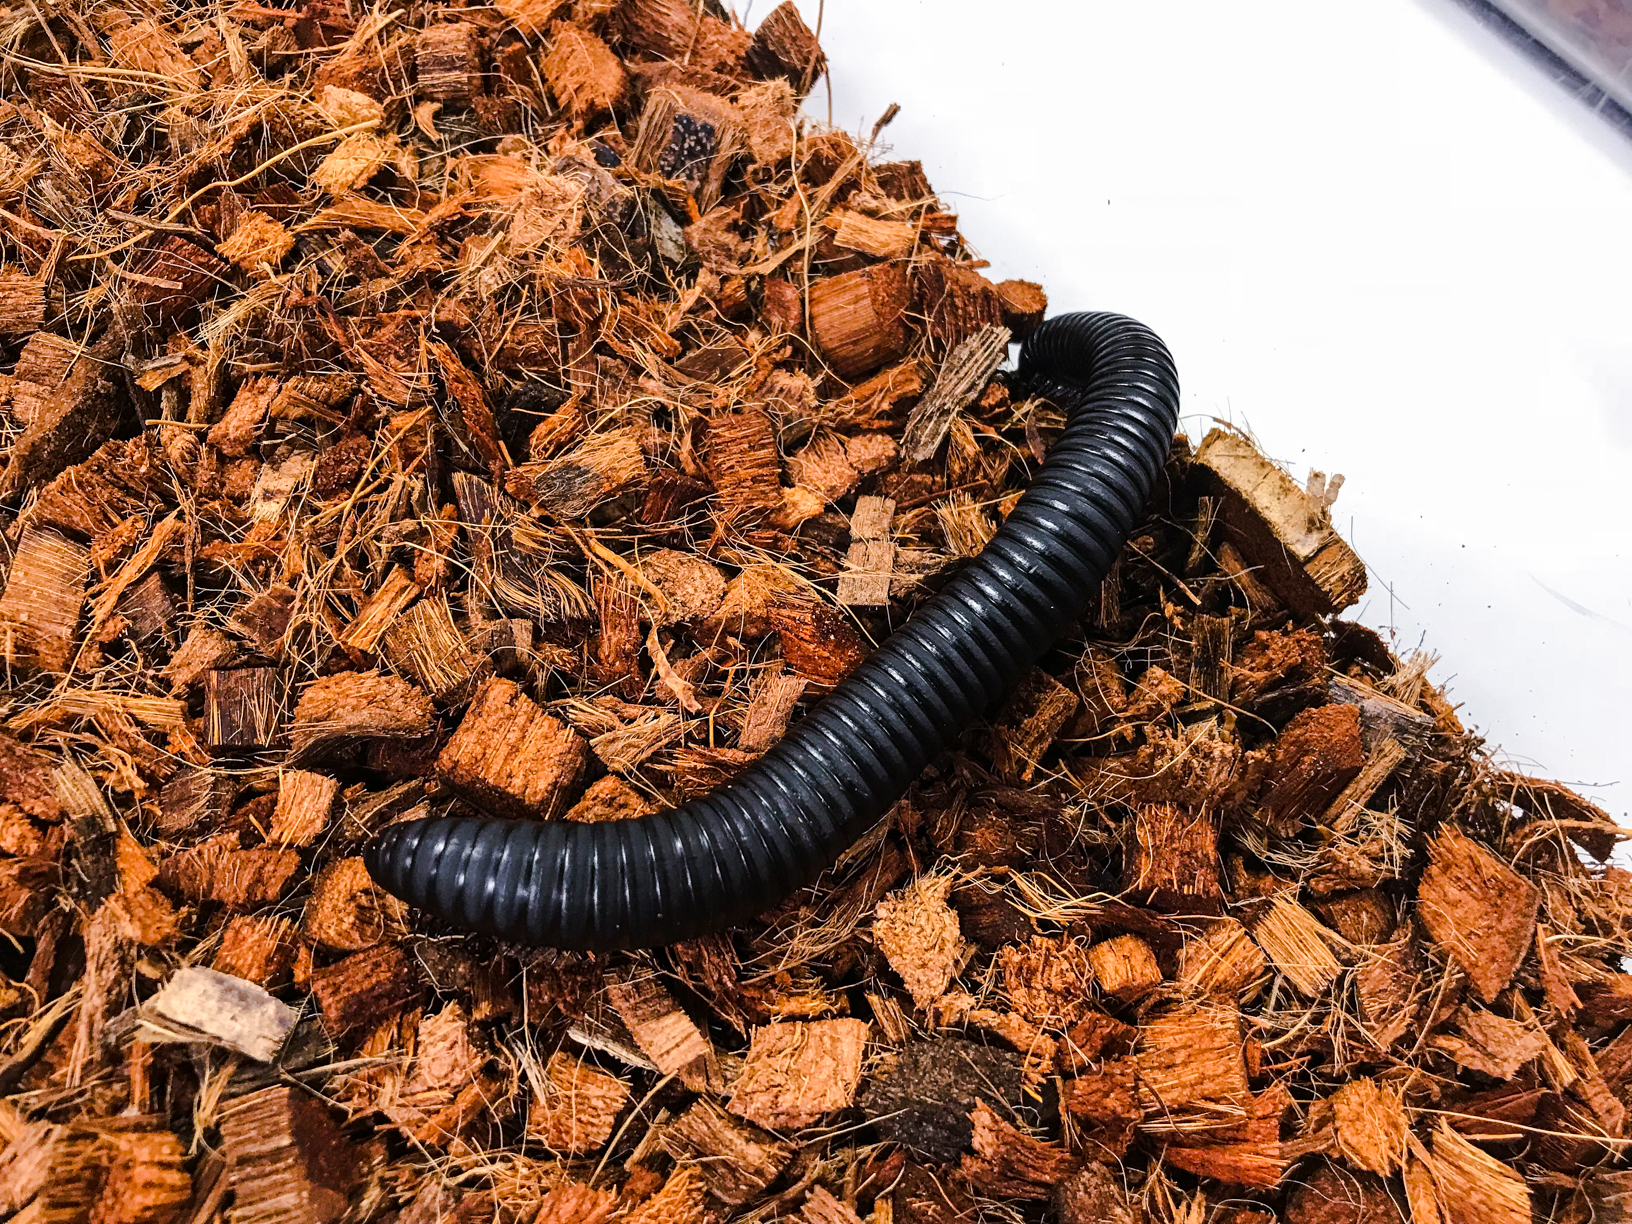 African Giant Millipede at the Virginia Zoo